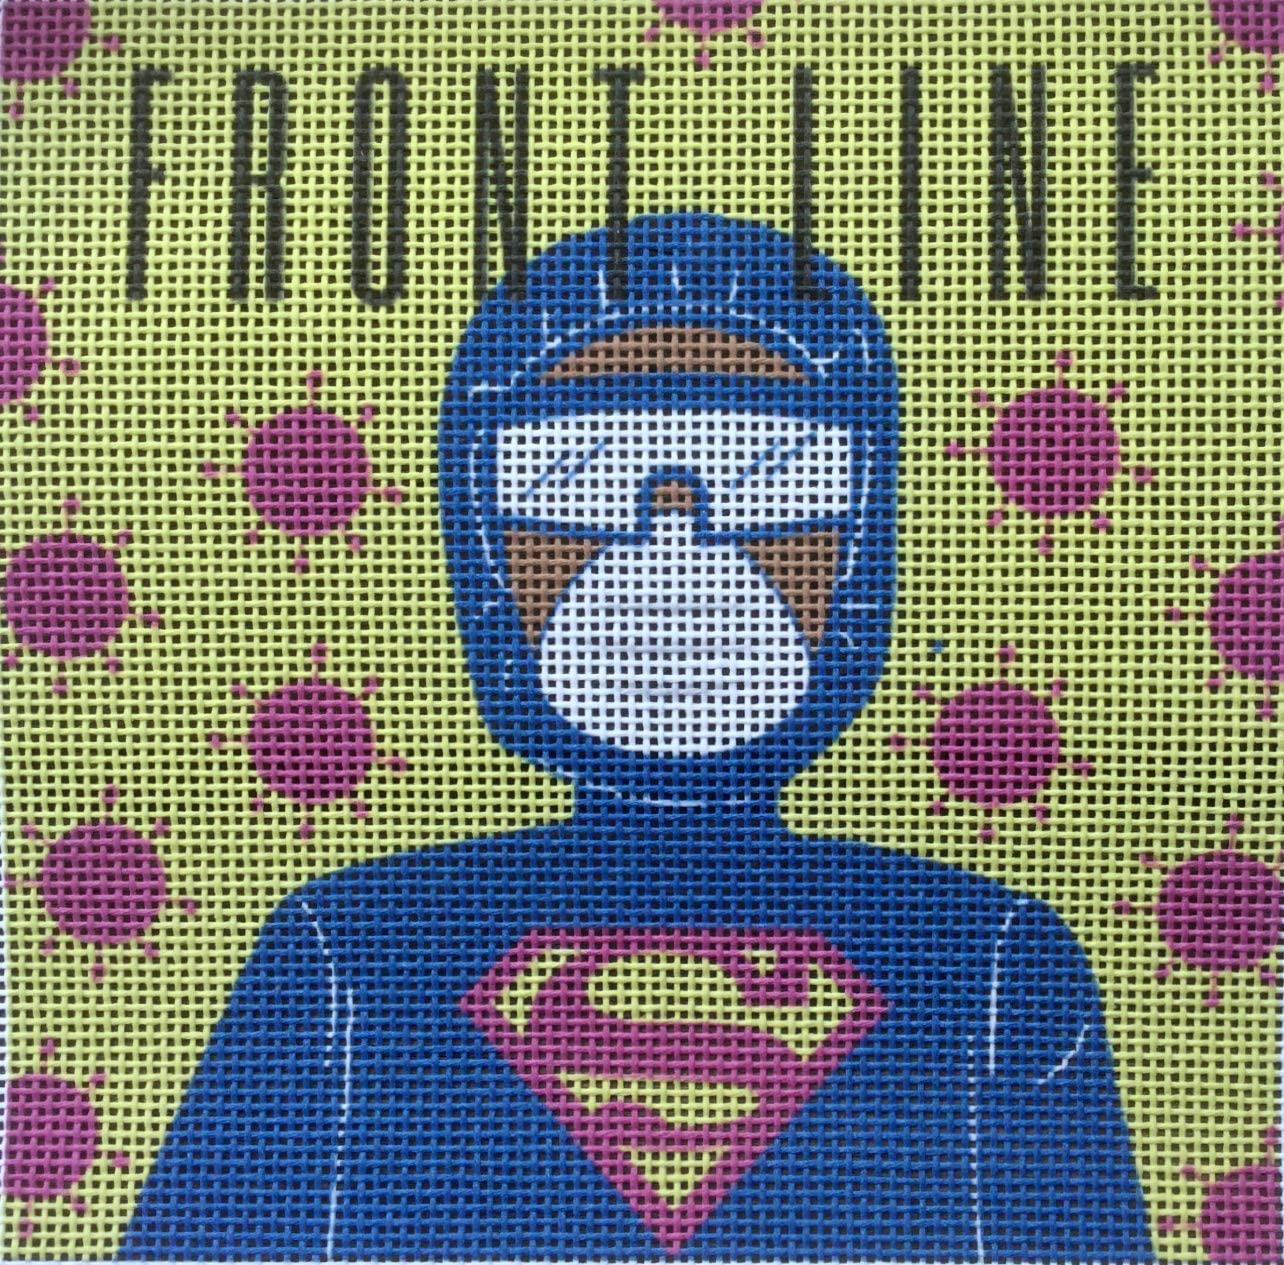 Stitch it Then Frame it. Use Any Stitches Needlepoint Printed Canvas of a Medical Frontline Worker in PPE Small Needlework Project 5 x 5 on 18 Holes per inch Canvas